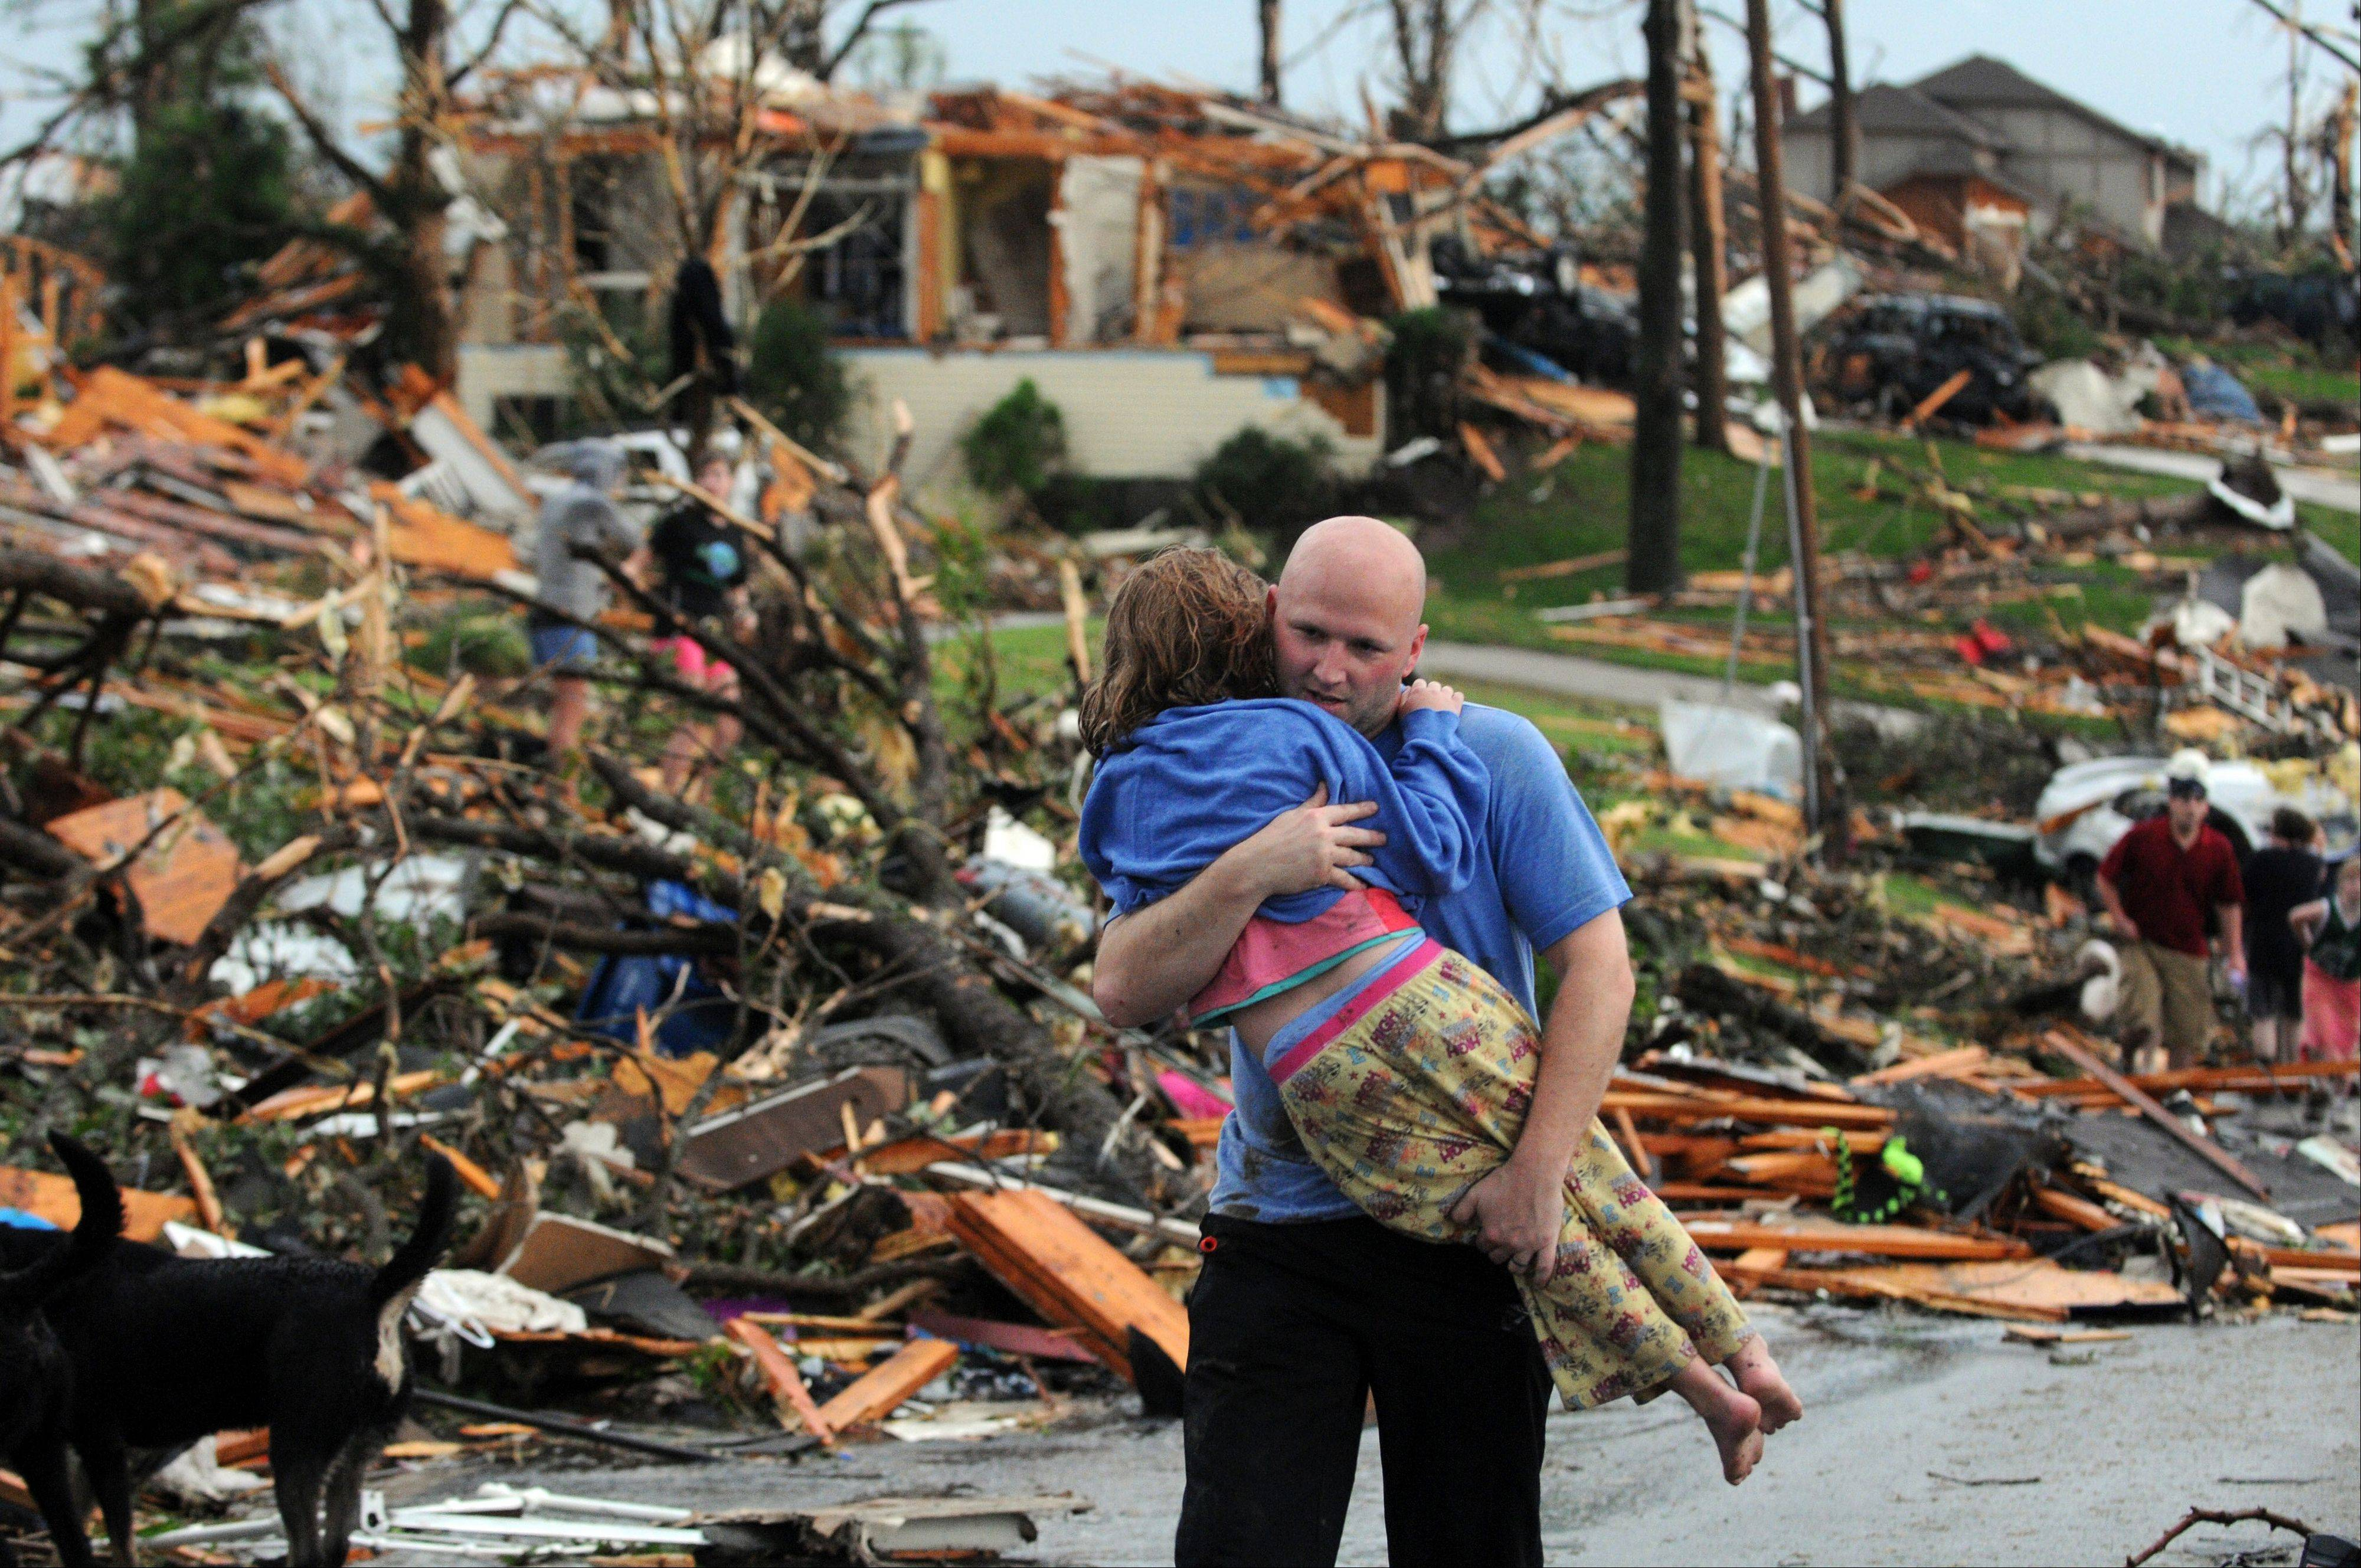 A man carries a young girl who was rescued after a tornado hit Joplin, Mo. In 2011 the United States saw one of the busiest tornado seasons in generations: Nearly 1,700 tornadoes that killed 553 people.